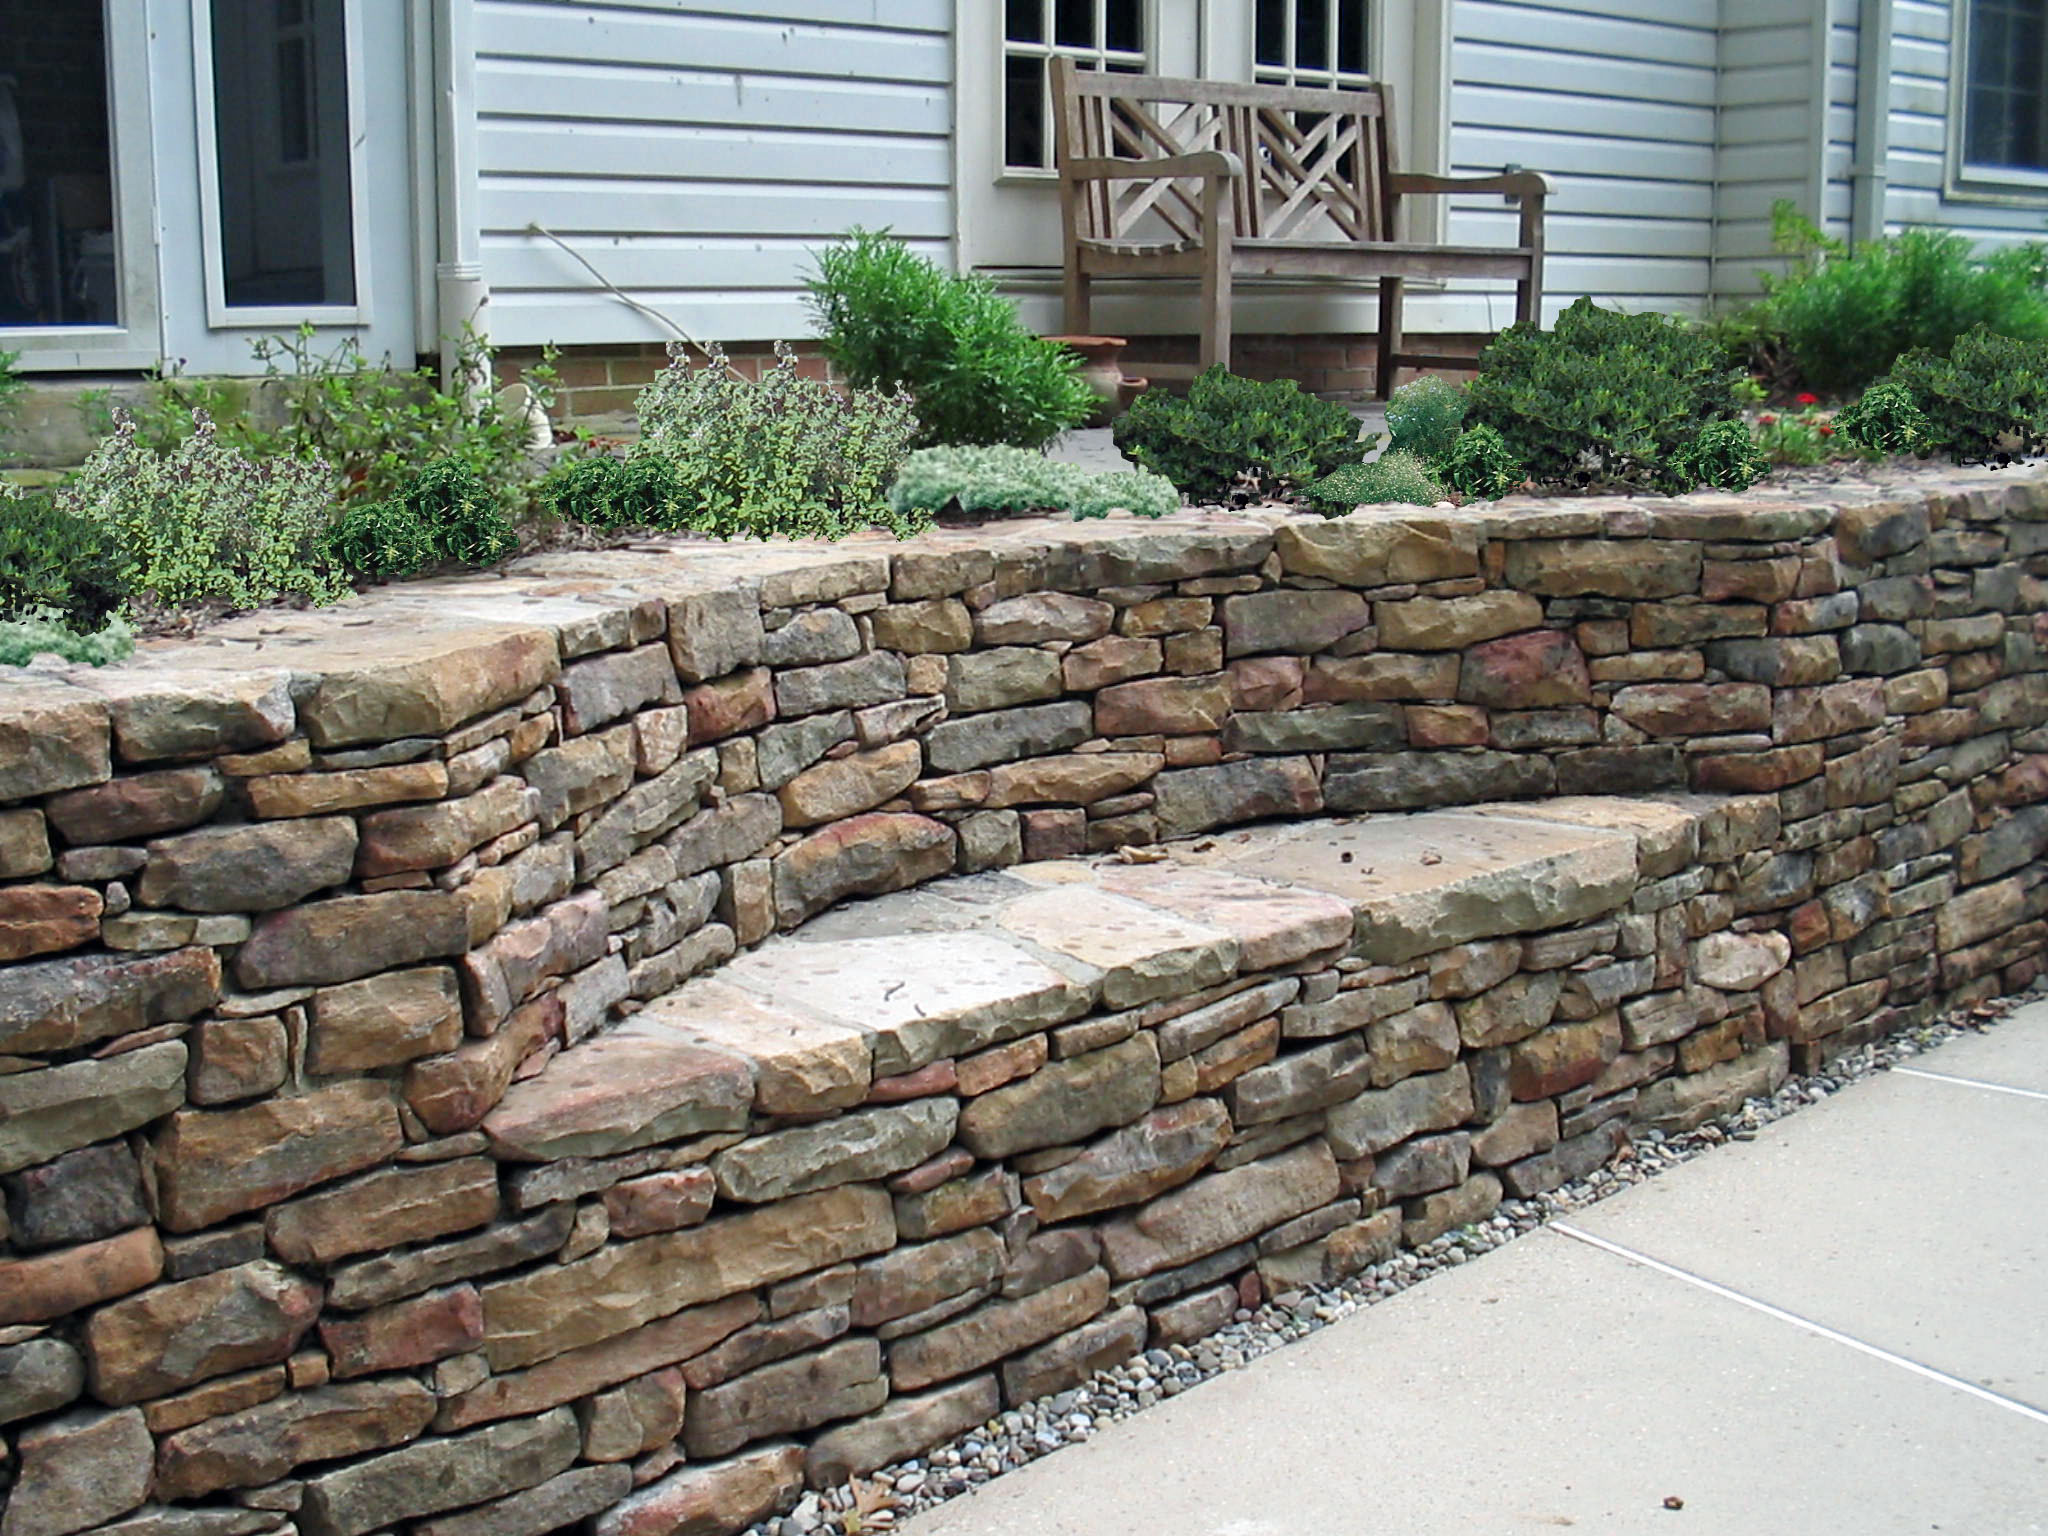 Stone Wall with built-in seating area